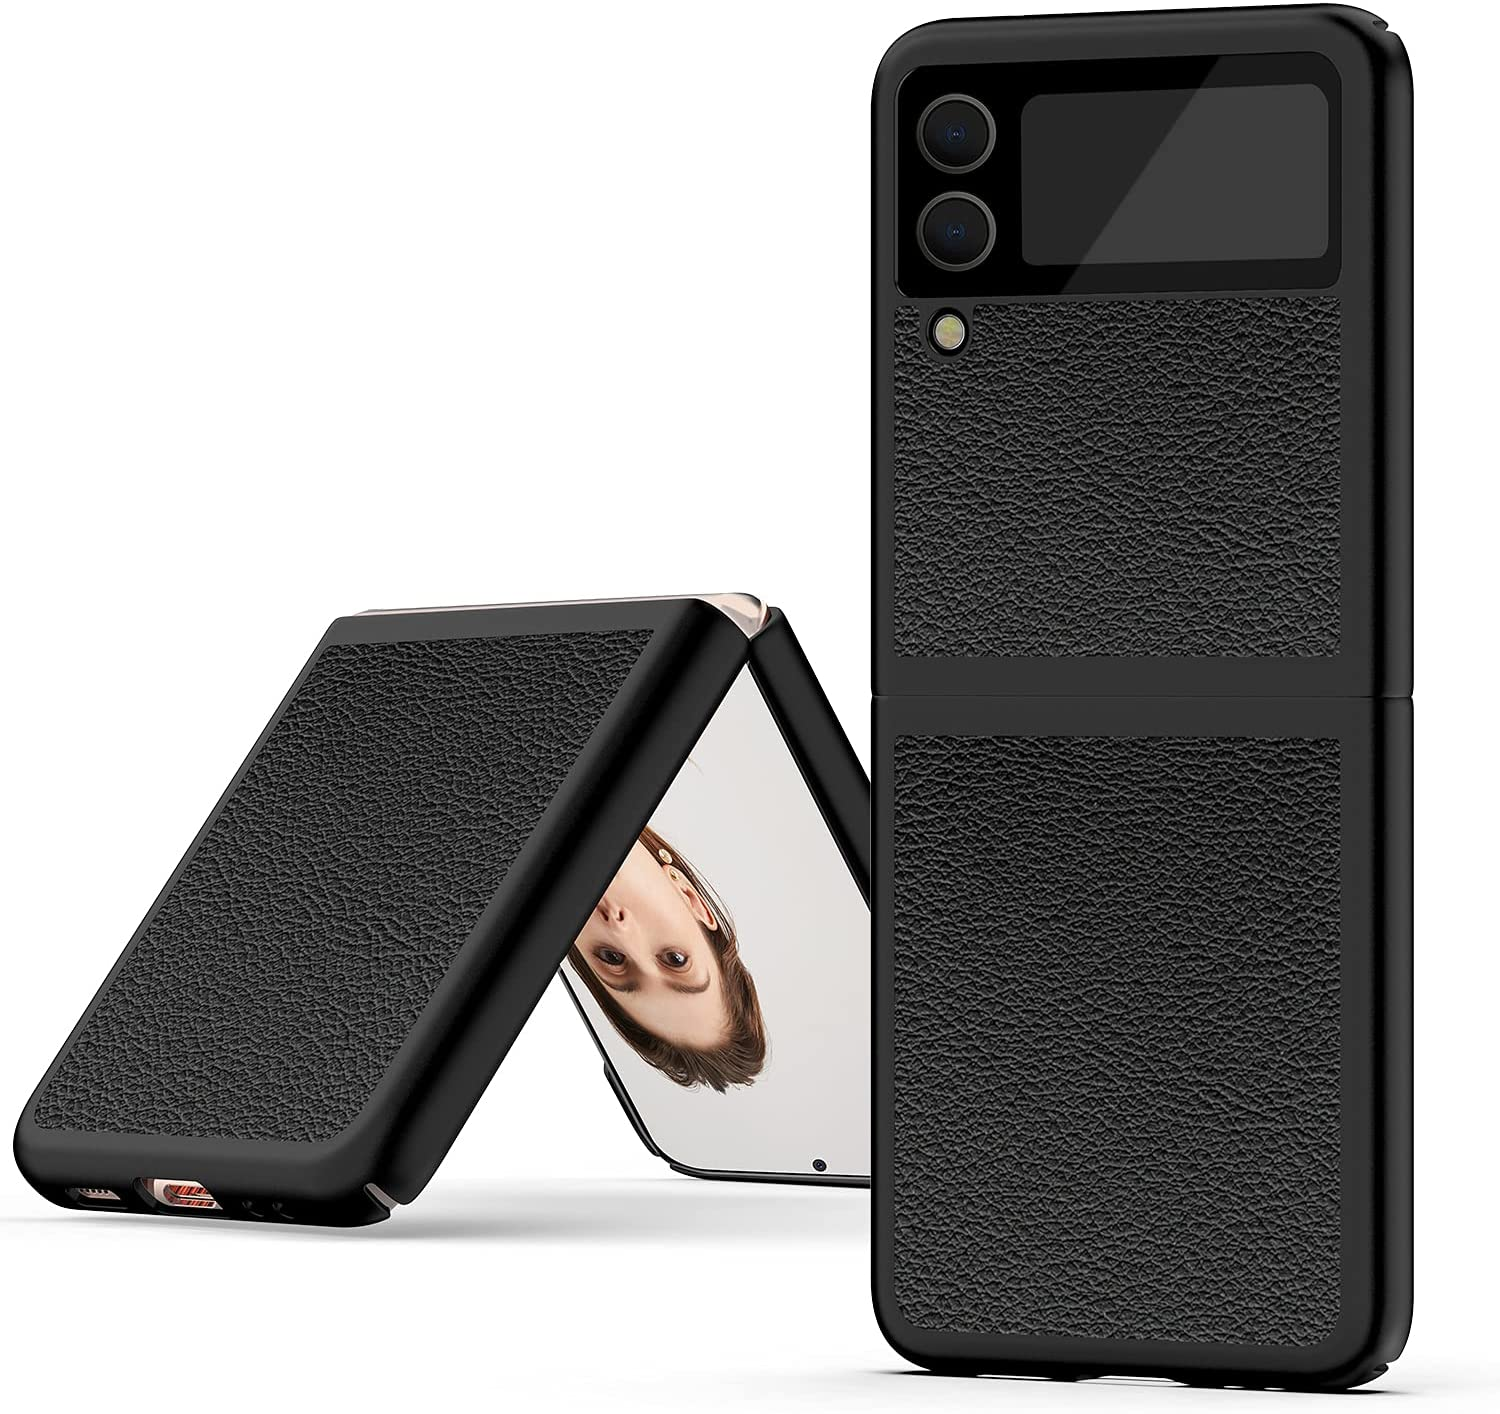 Case for Galaxy Z Flip 3,WATACHE Stylish Slim & Thin Soft Litchi Pattern PU Leather Comfortable Secure Grip Anti-Fingerprint Non-Slip Protective Shock-Absorbing Compatible with Galaxy Z Flip 3,Black